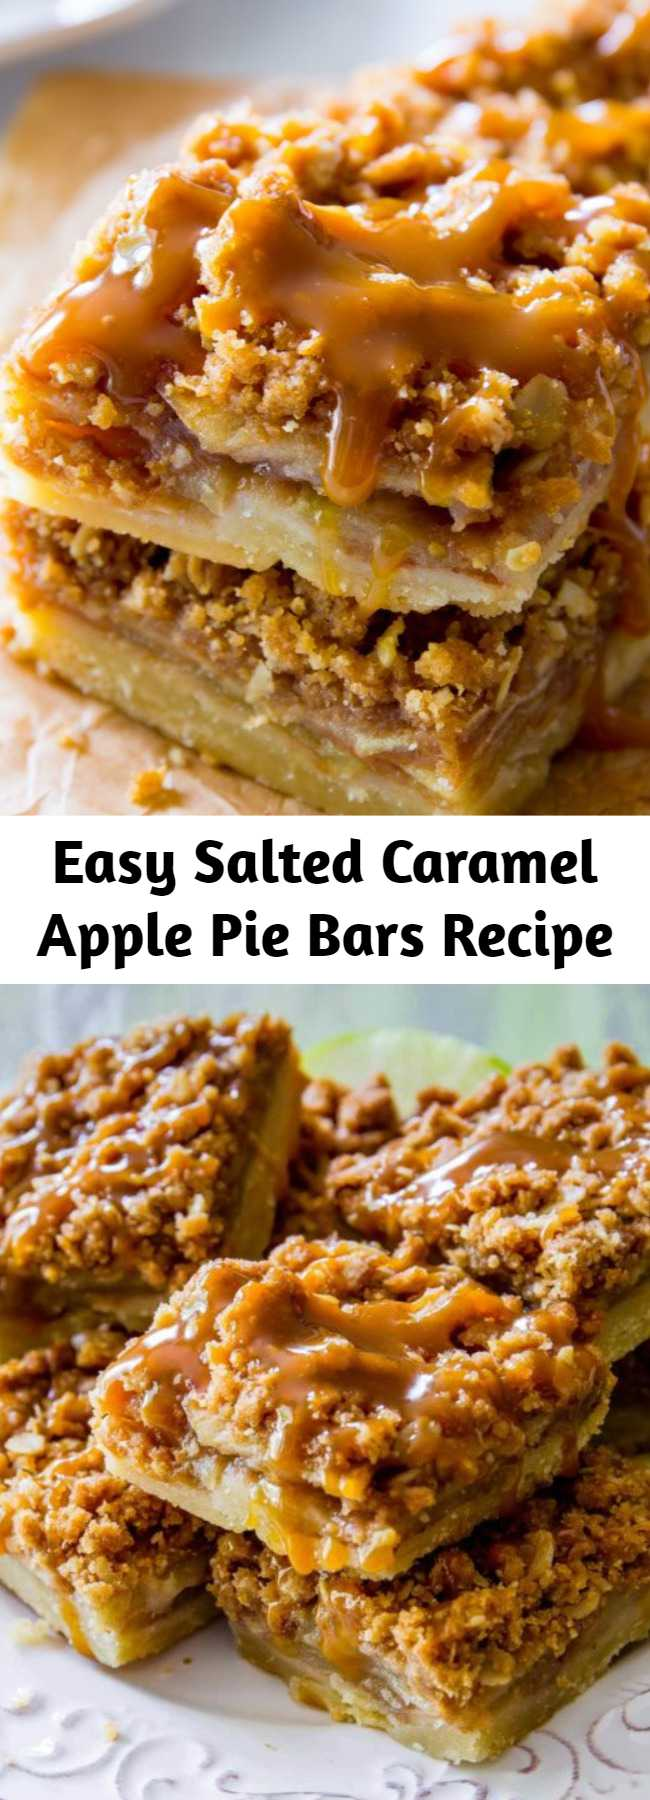 Easy Salted Caramel Apple Pie Bars Recipe - Made with a shortbread crust, spiced apple filling, streusel topping, and homemade salted caramel, apple pie bars are just as delicious as apple pie, but much simpler to make. You'll love this fun twist on a classic dessert!